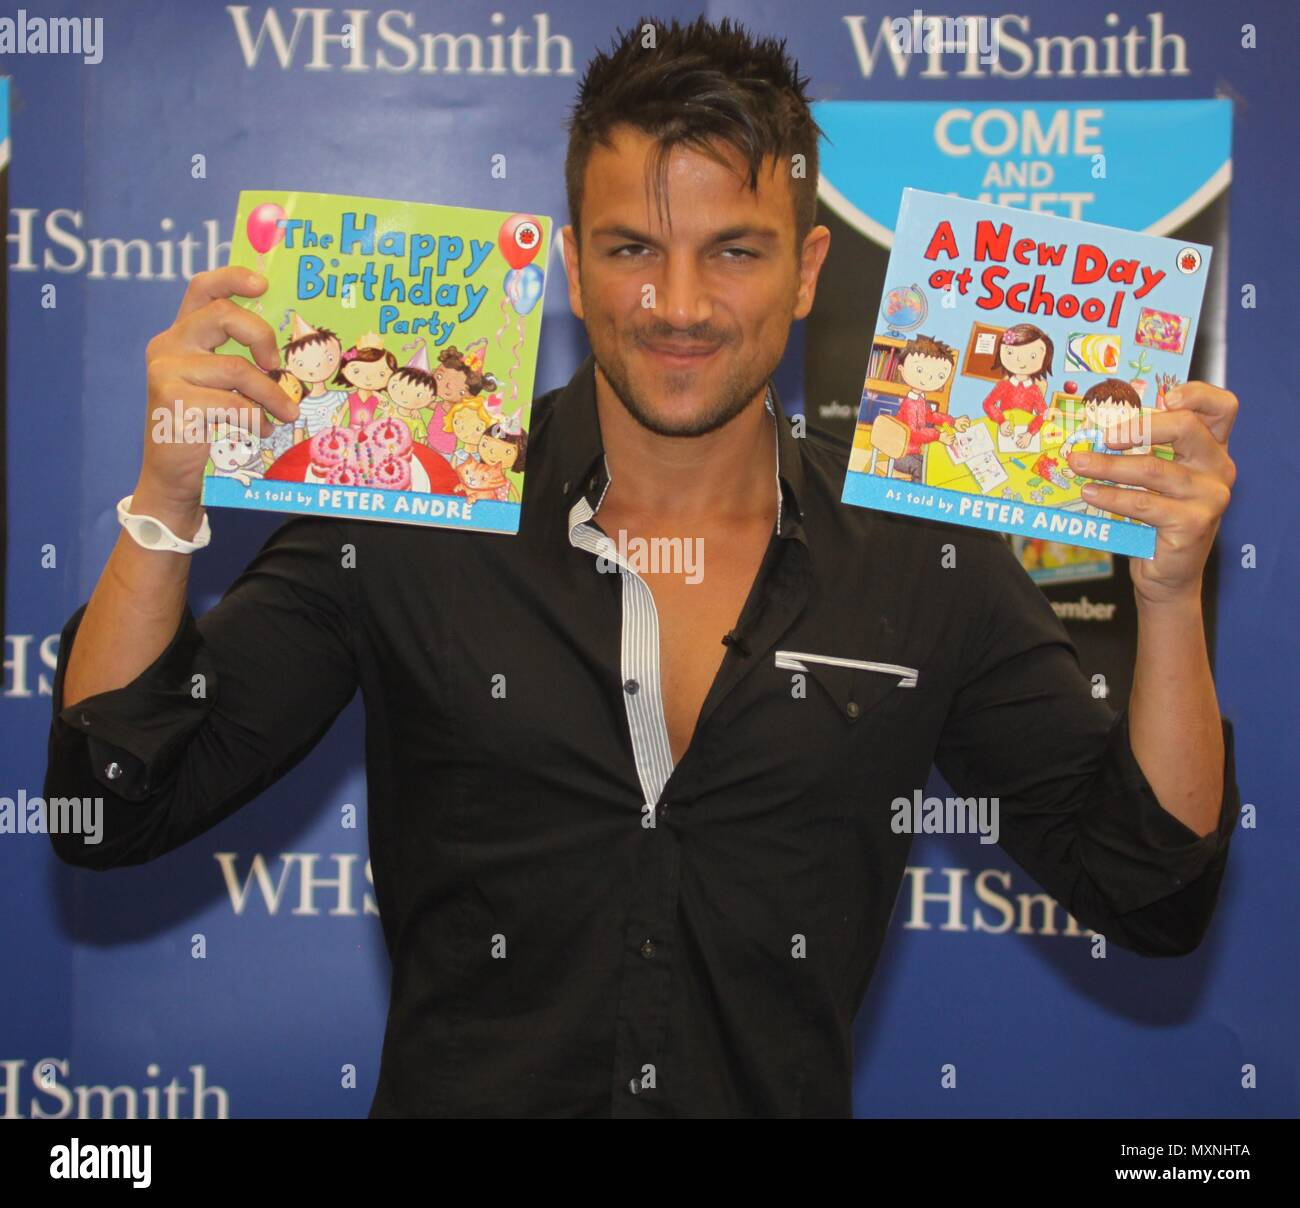 Manchester,Uk, Peter Andre signs copies of his new childrens books at Whsmith Trafford Centr, Credit Ian Fairbrother/Alamy Stock Photos Stock Photo